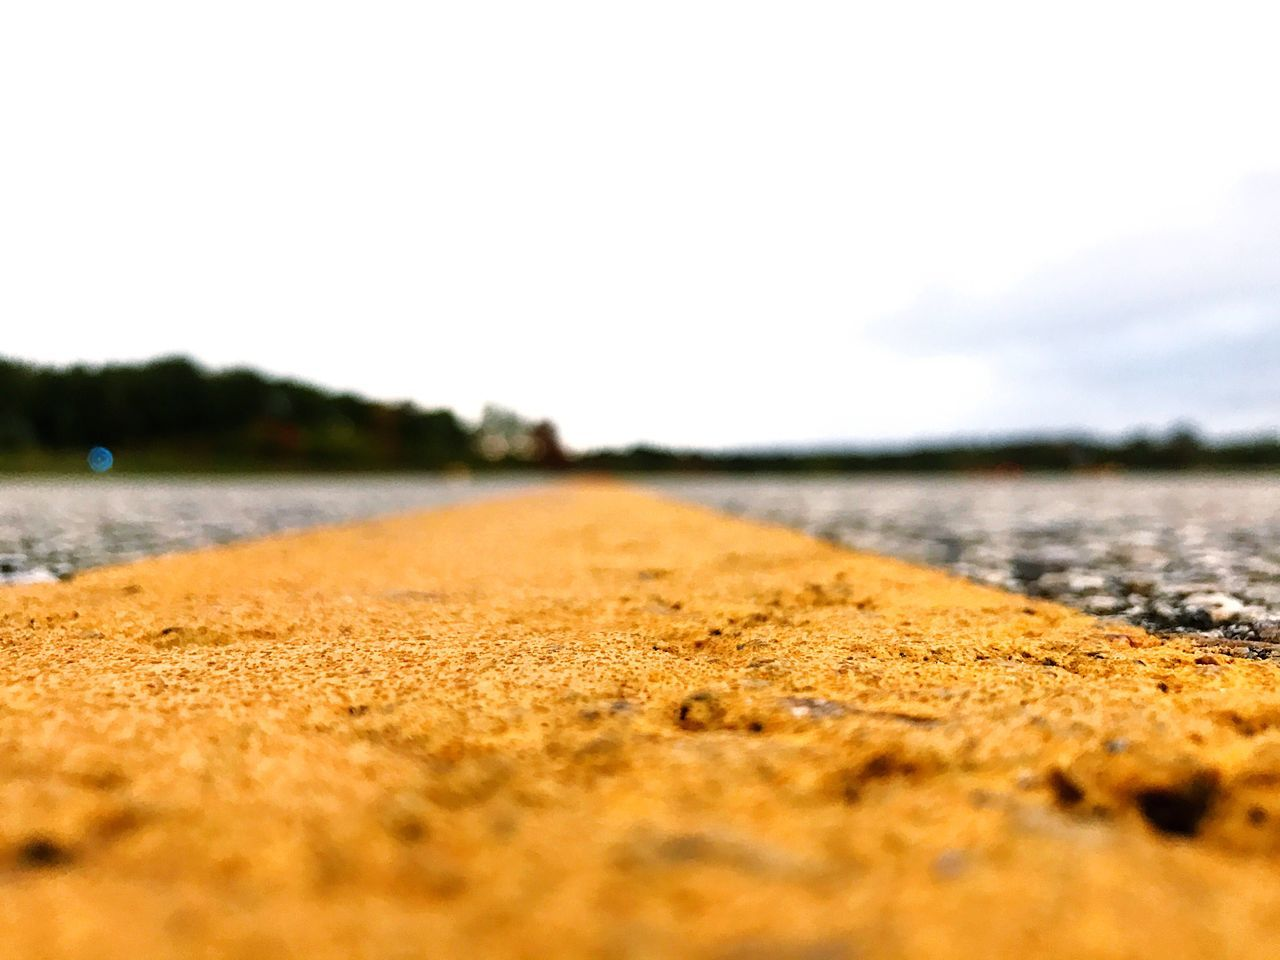 TakeoverContrast Surface Level Vacations Travel Destinations Tourism Tranquil Scene Tranquility Scenics Runway Selective Focus No People Still Life Lush Foliage Tree Pavement Maximum Closeness